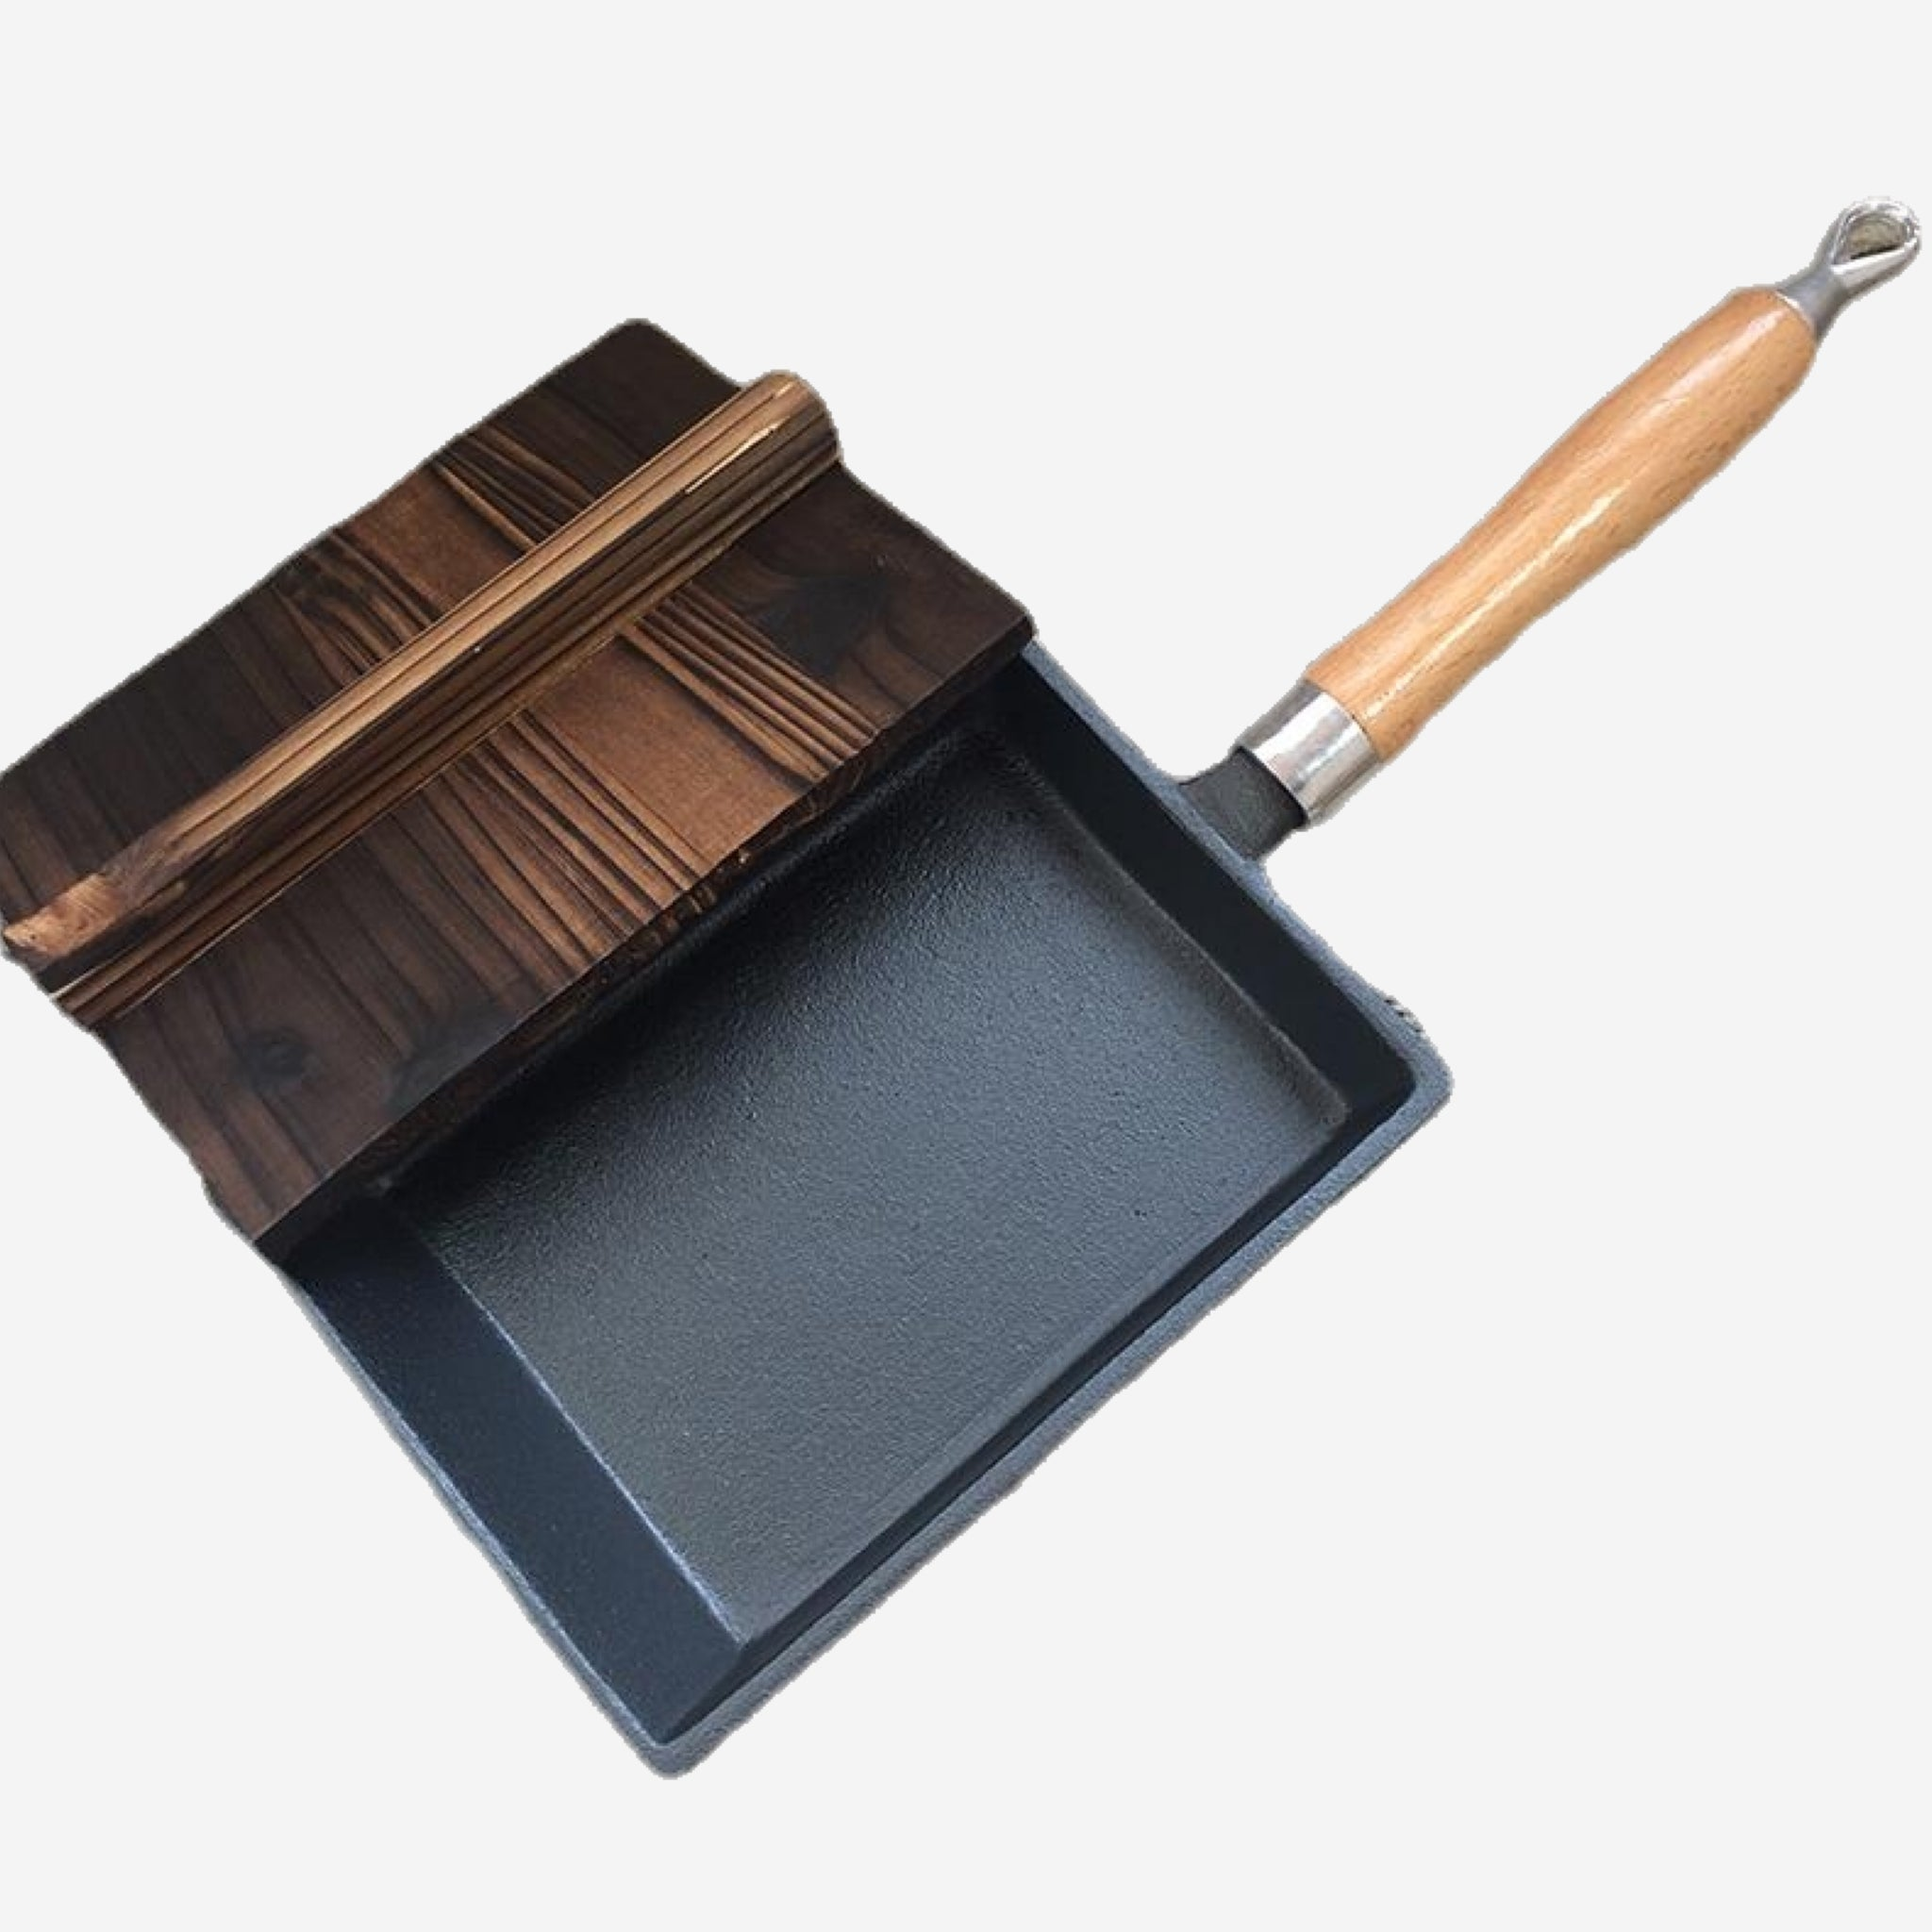 Japanese Cast Iron Tamagoyaki Frying Pans